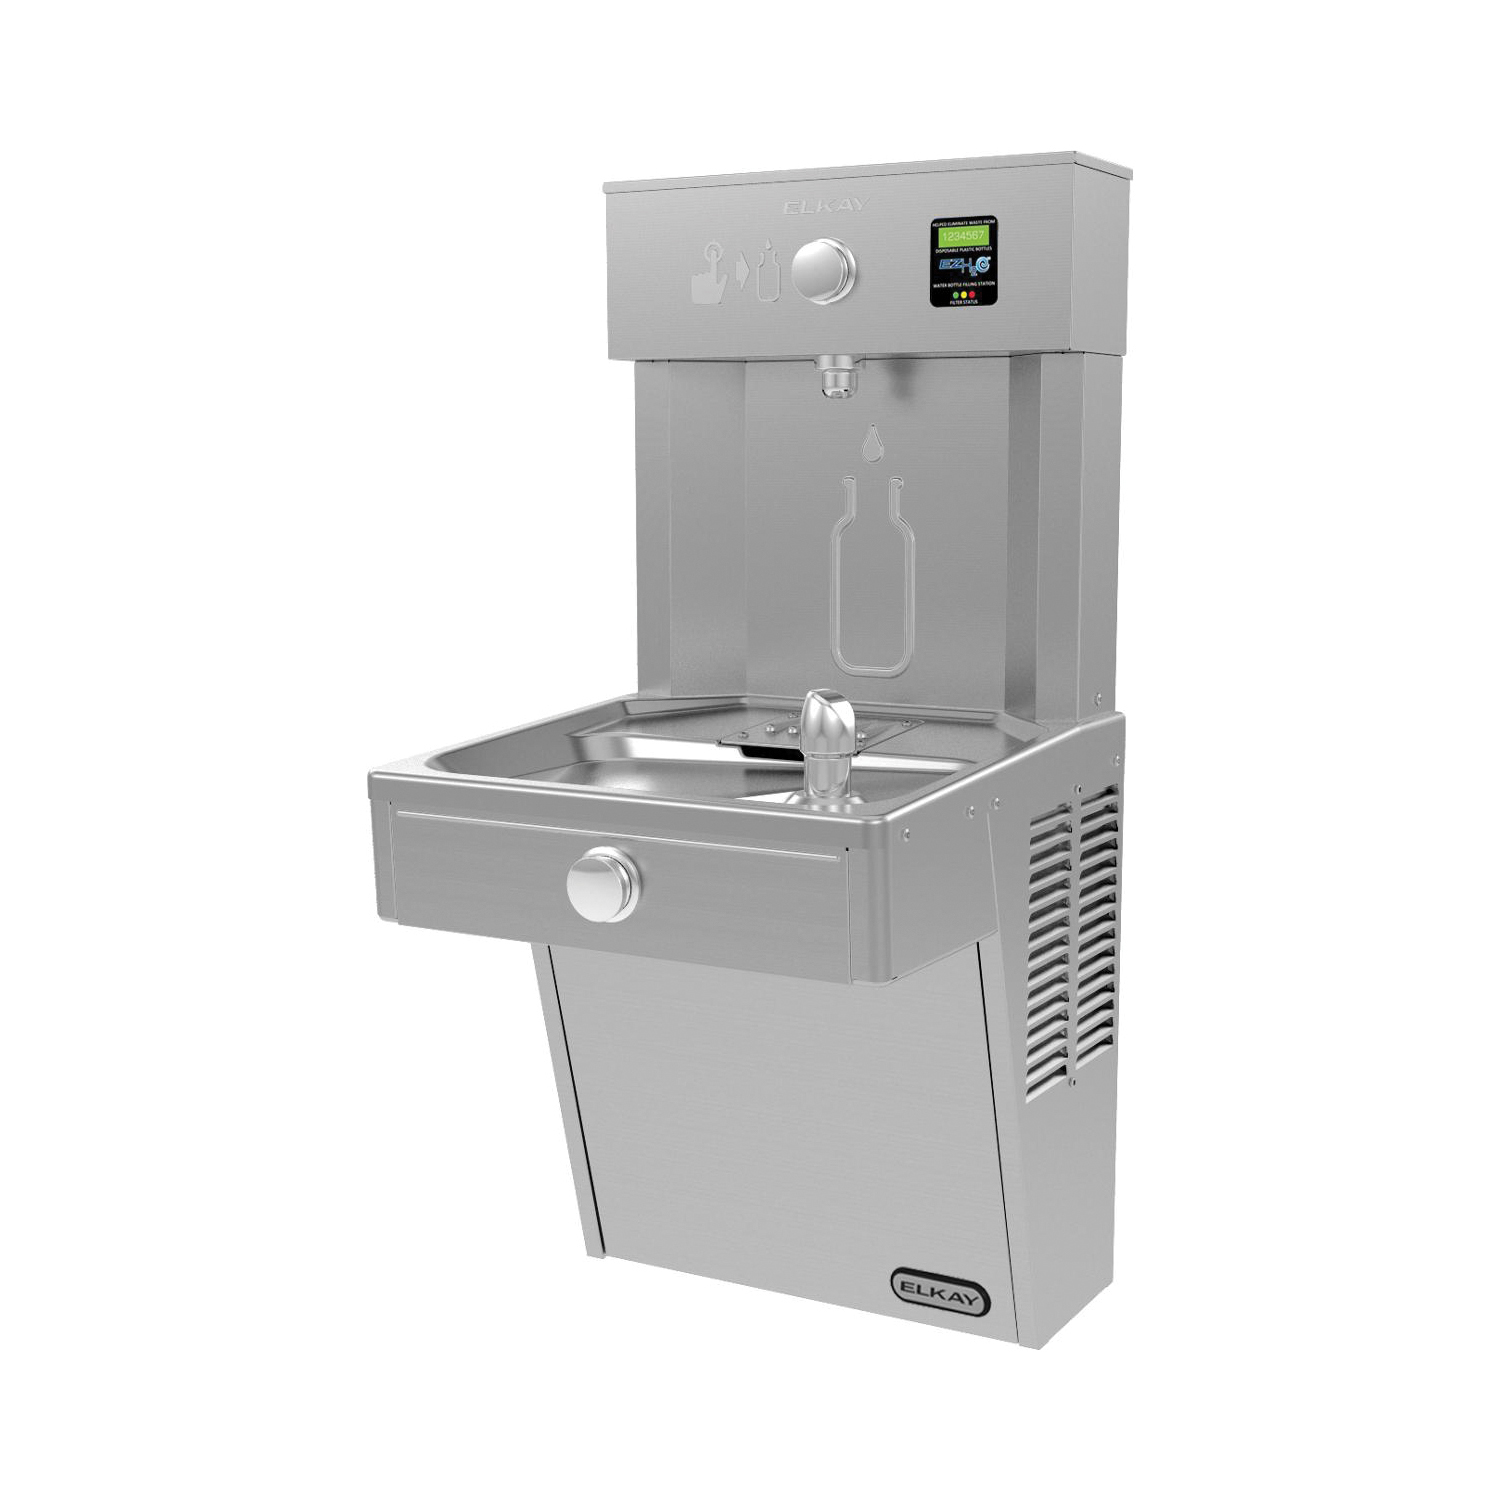 Elkay® LVRCDWSK Filtered Bottle Filling Station and Cooler, 1.5 gpm, Pushbutton Operation, Non-Refrigerated Chilling, Domestic